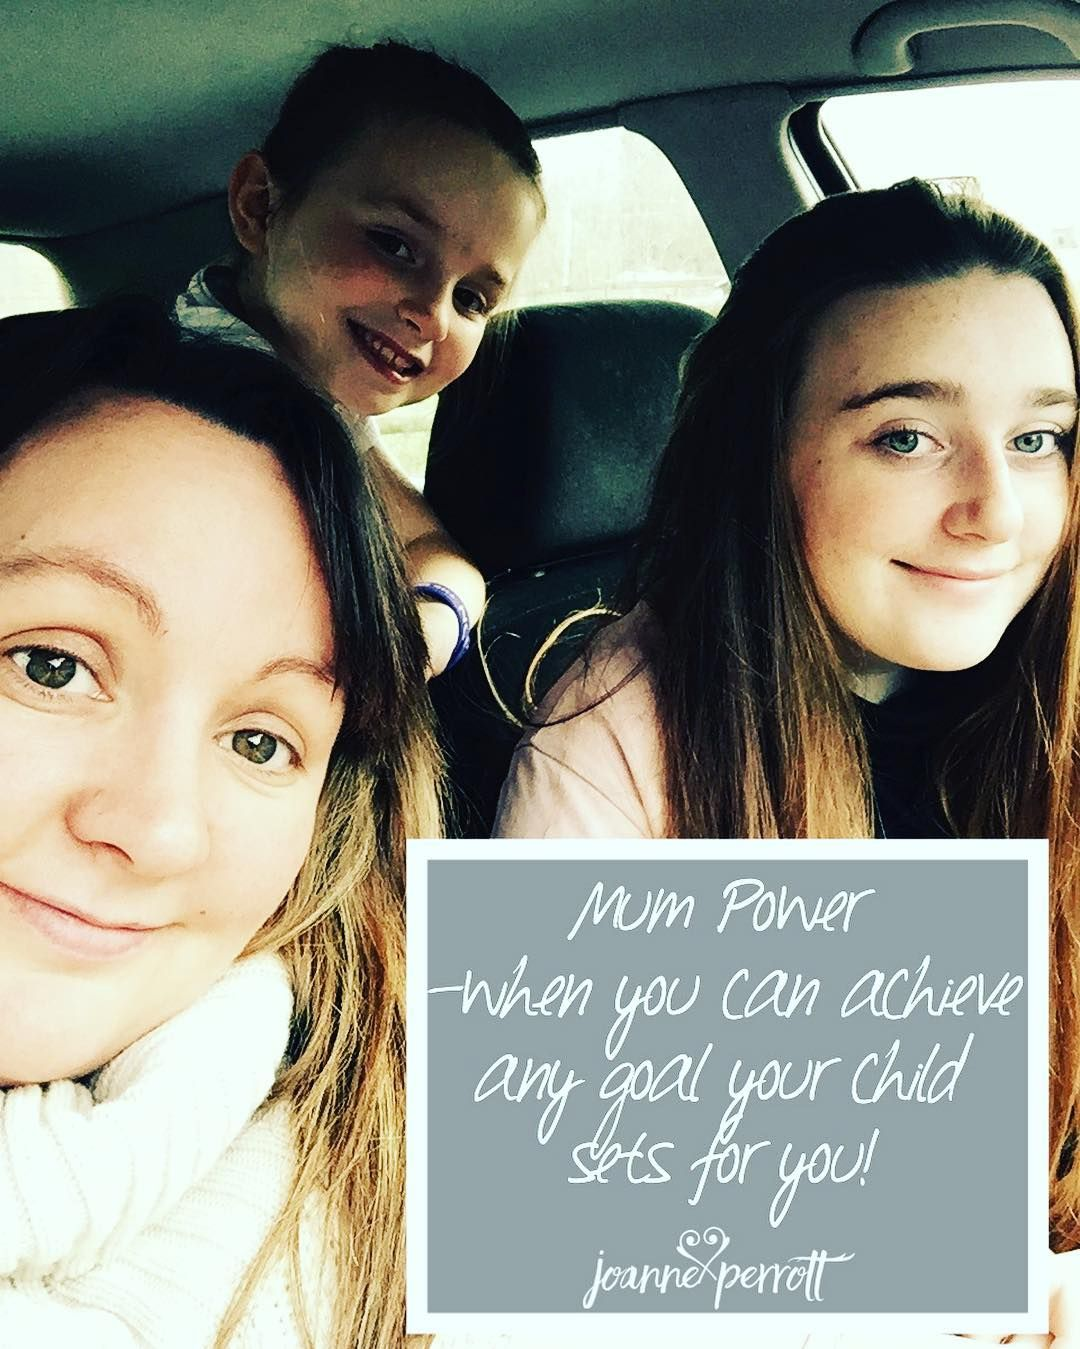 If you want to #achieve a #goal get your children to set it for you! I seem to deliver on everything they need me to do. #itstimetofocus on #mumpower